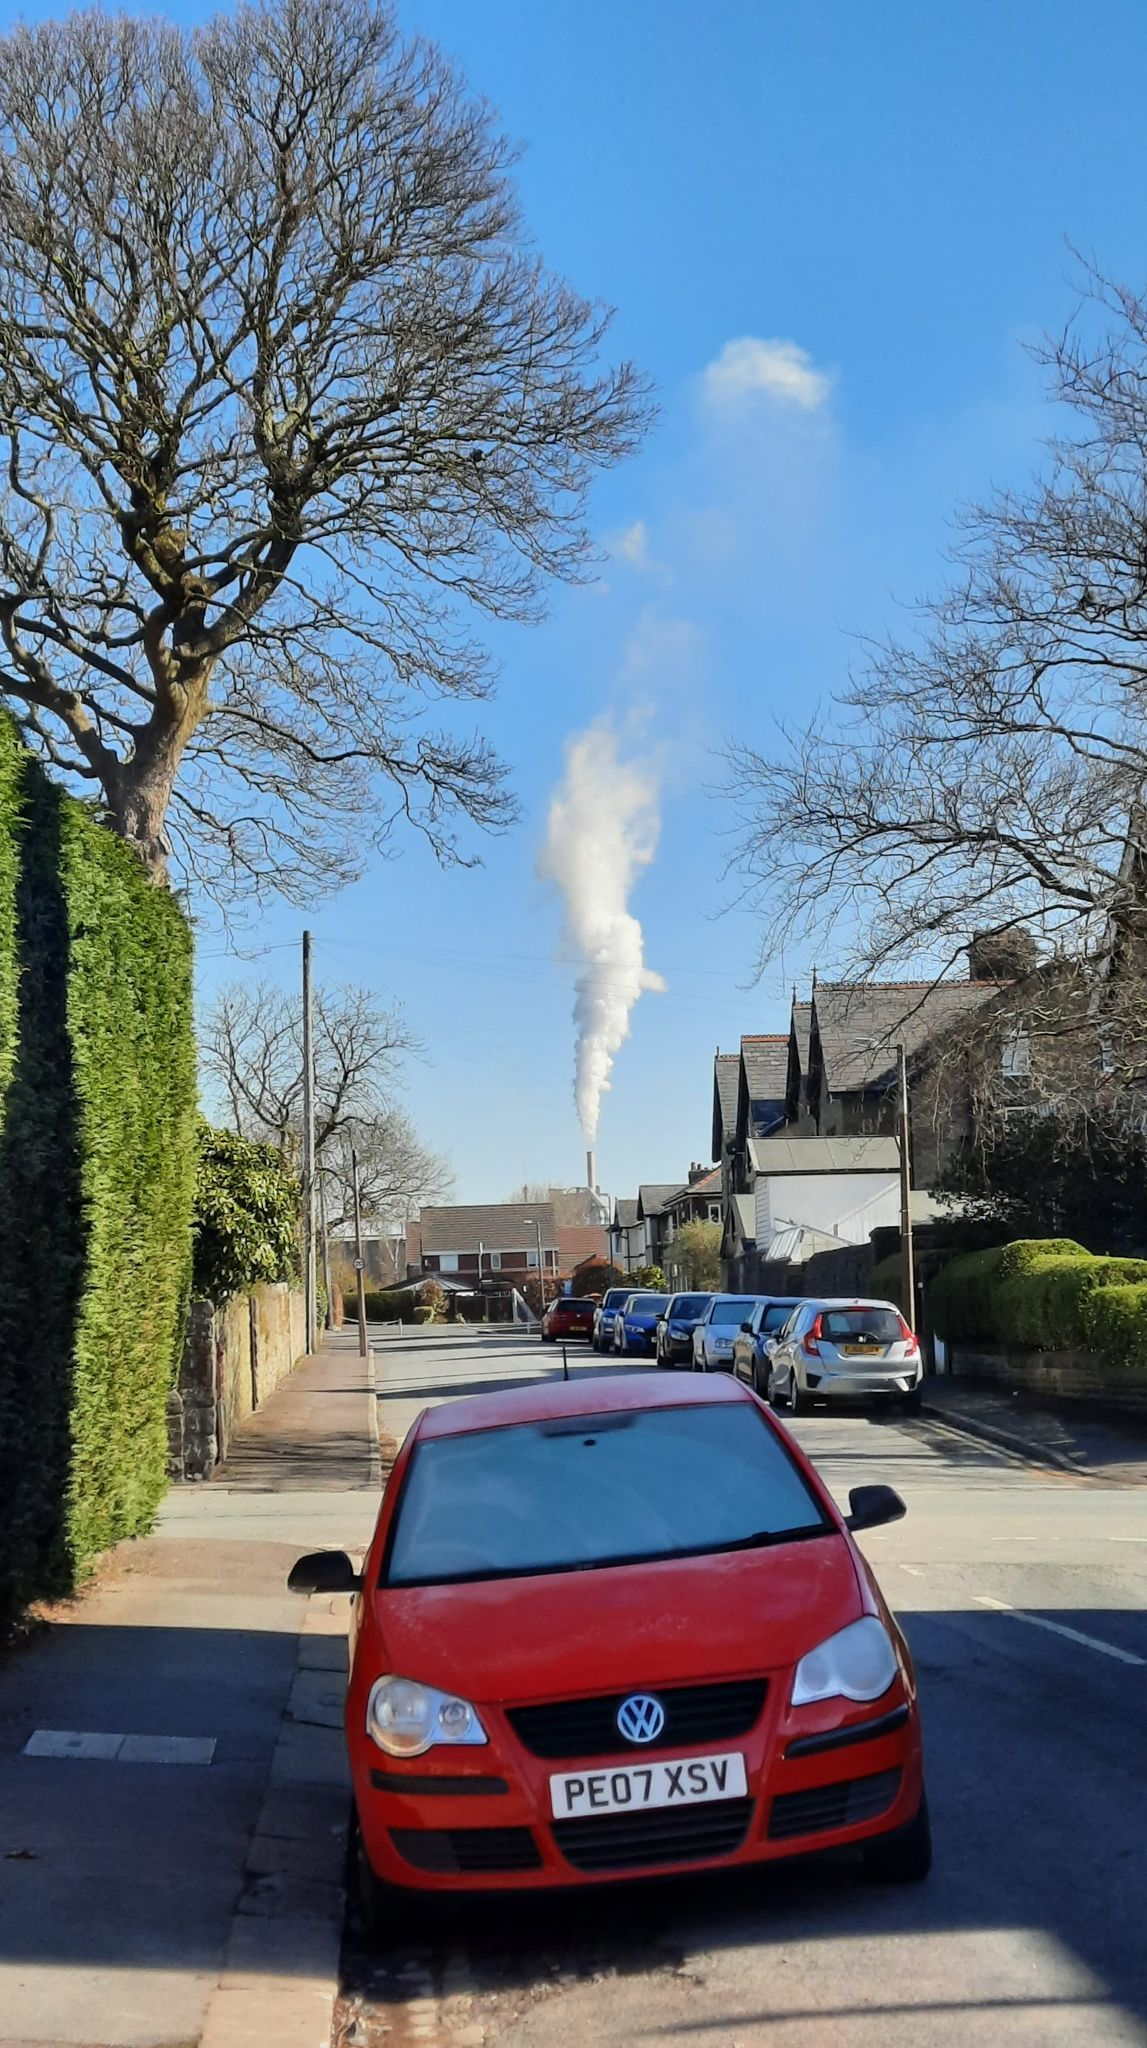 The smoke seen from Hanson Cement, which many residents say is more than just steam